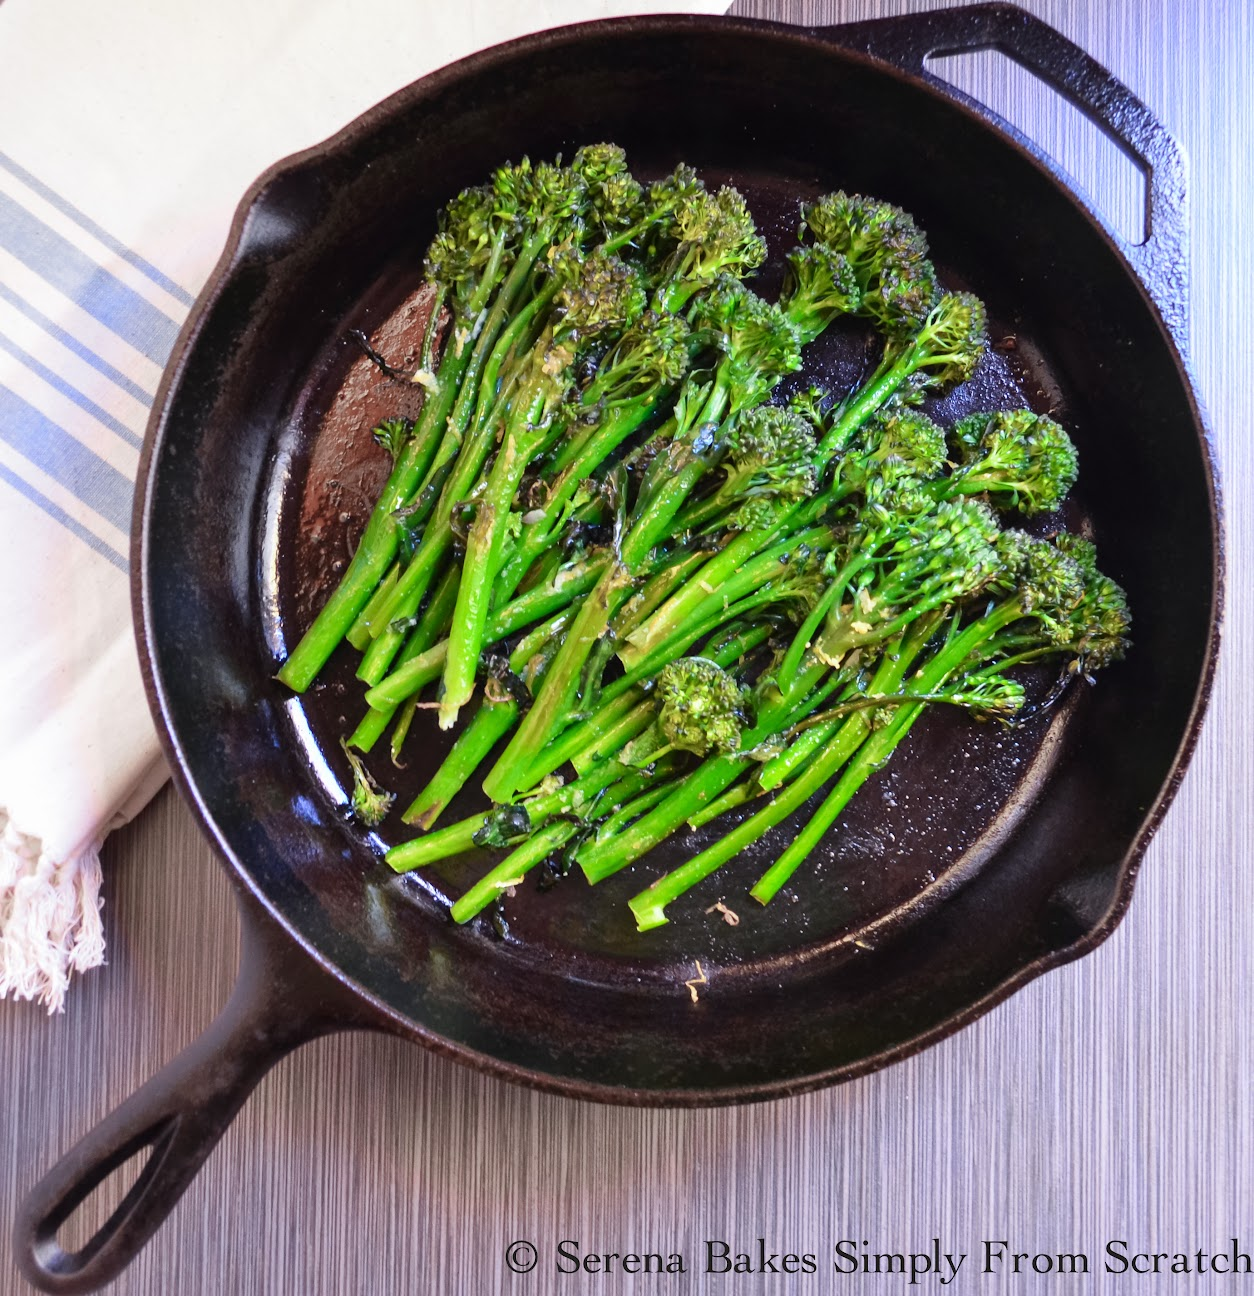 Oven Roasted Broccoli or Broccolini. So easy and healthy. | Serena Bakes Simply From Scratch